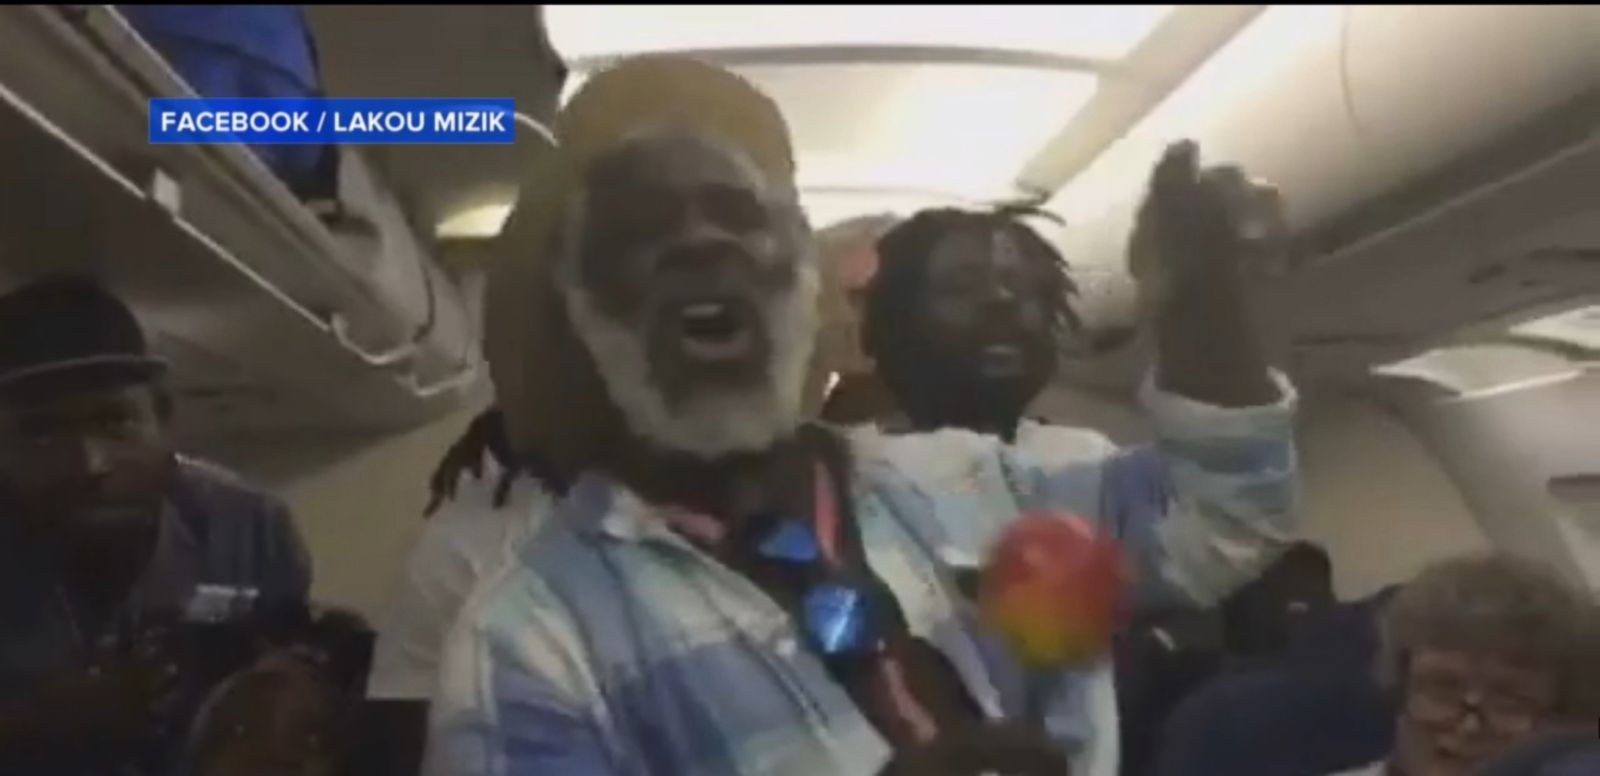 Band members of Lakou Mizik were among the passengers whose flight was delayed at Chicago's O'Hare airport. The Haitian band treated their fellow fliers with a now viral impromptu performance.